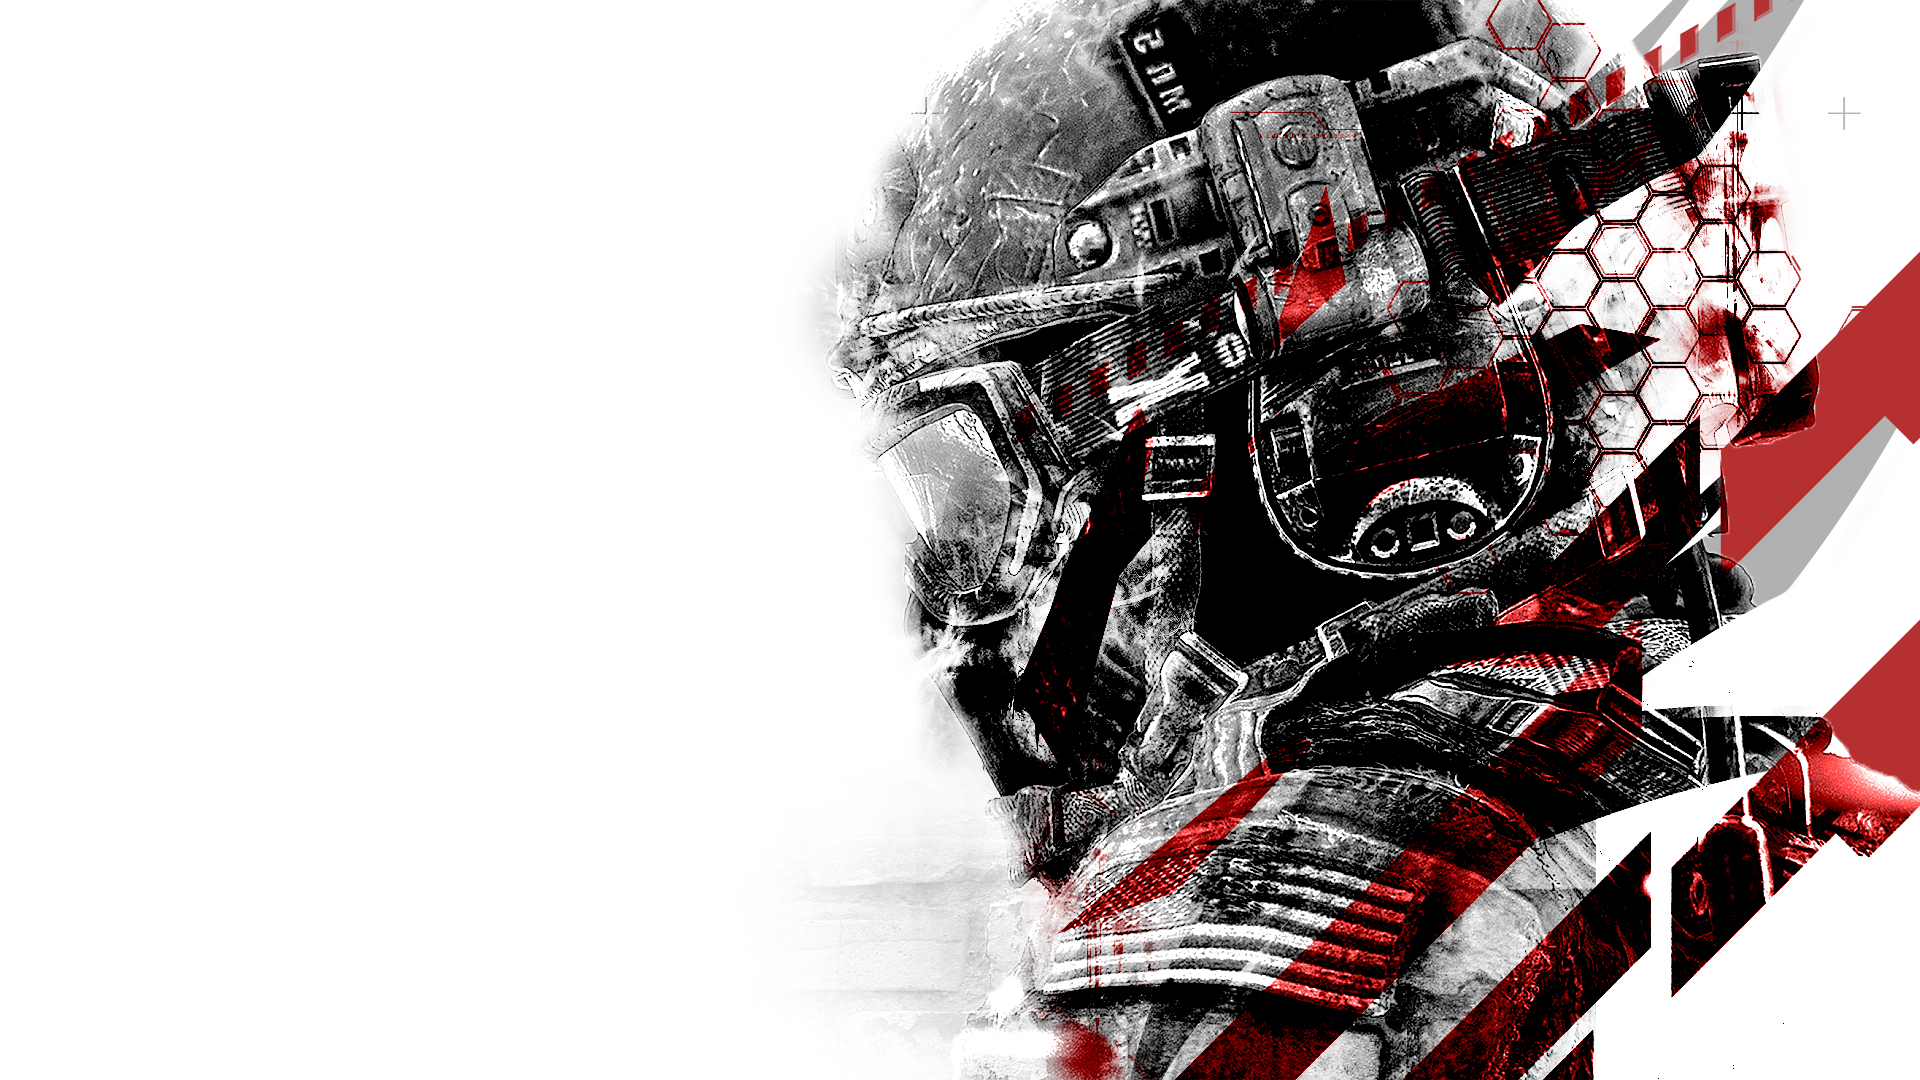 Soldier Wallpaper by NIHILUSDESIGNS 1920x1080